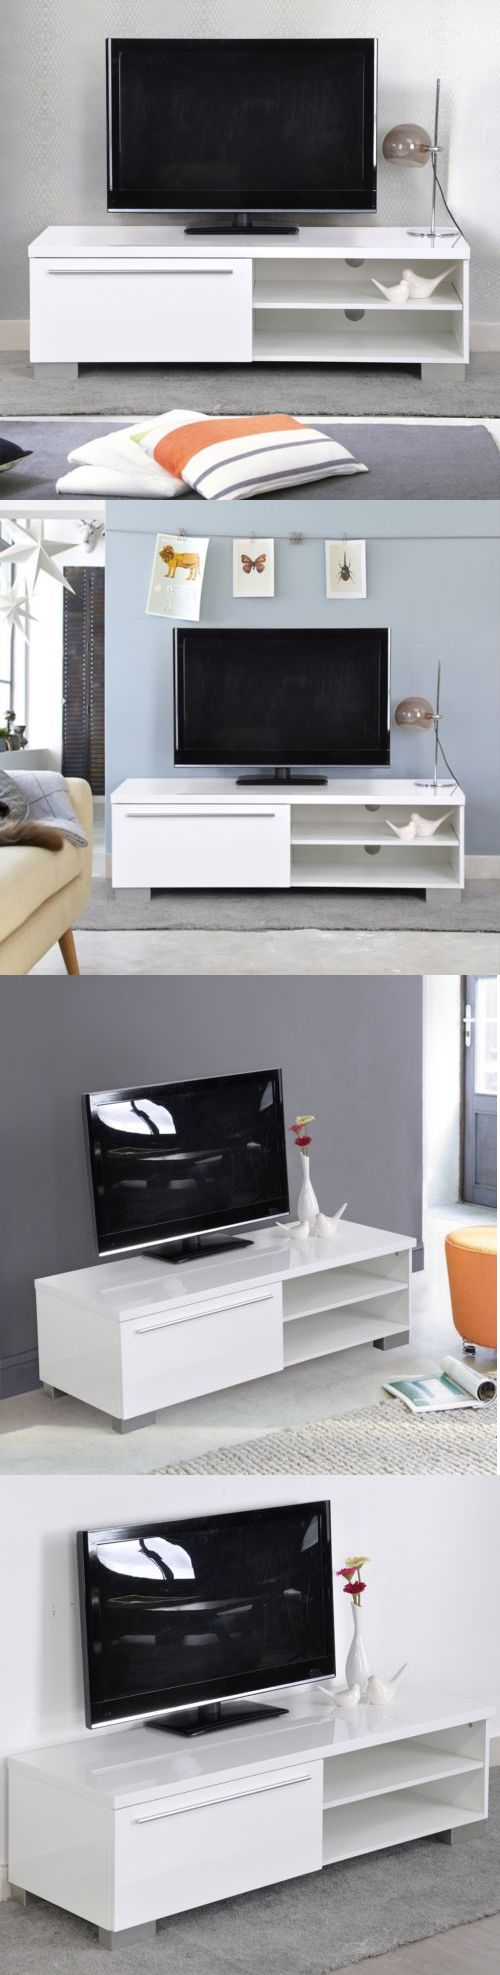 Home shop live tv stands chunky stretch tv stand - Furniture White High Gloss Wooden Tv Stand Living Room Cabinet Table Via Storage Drawers